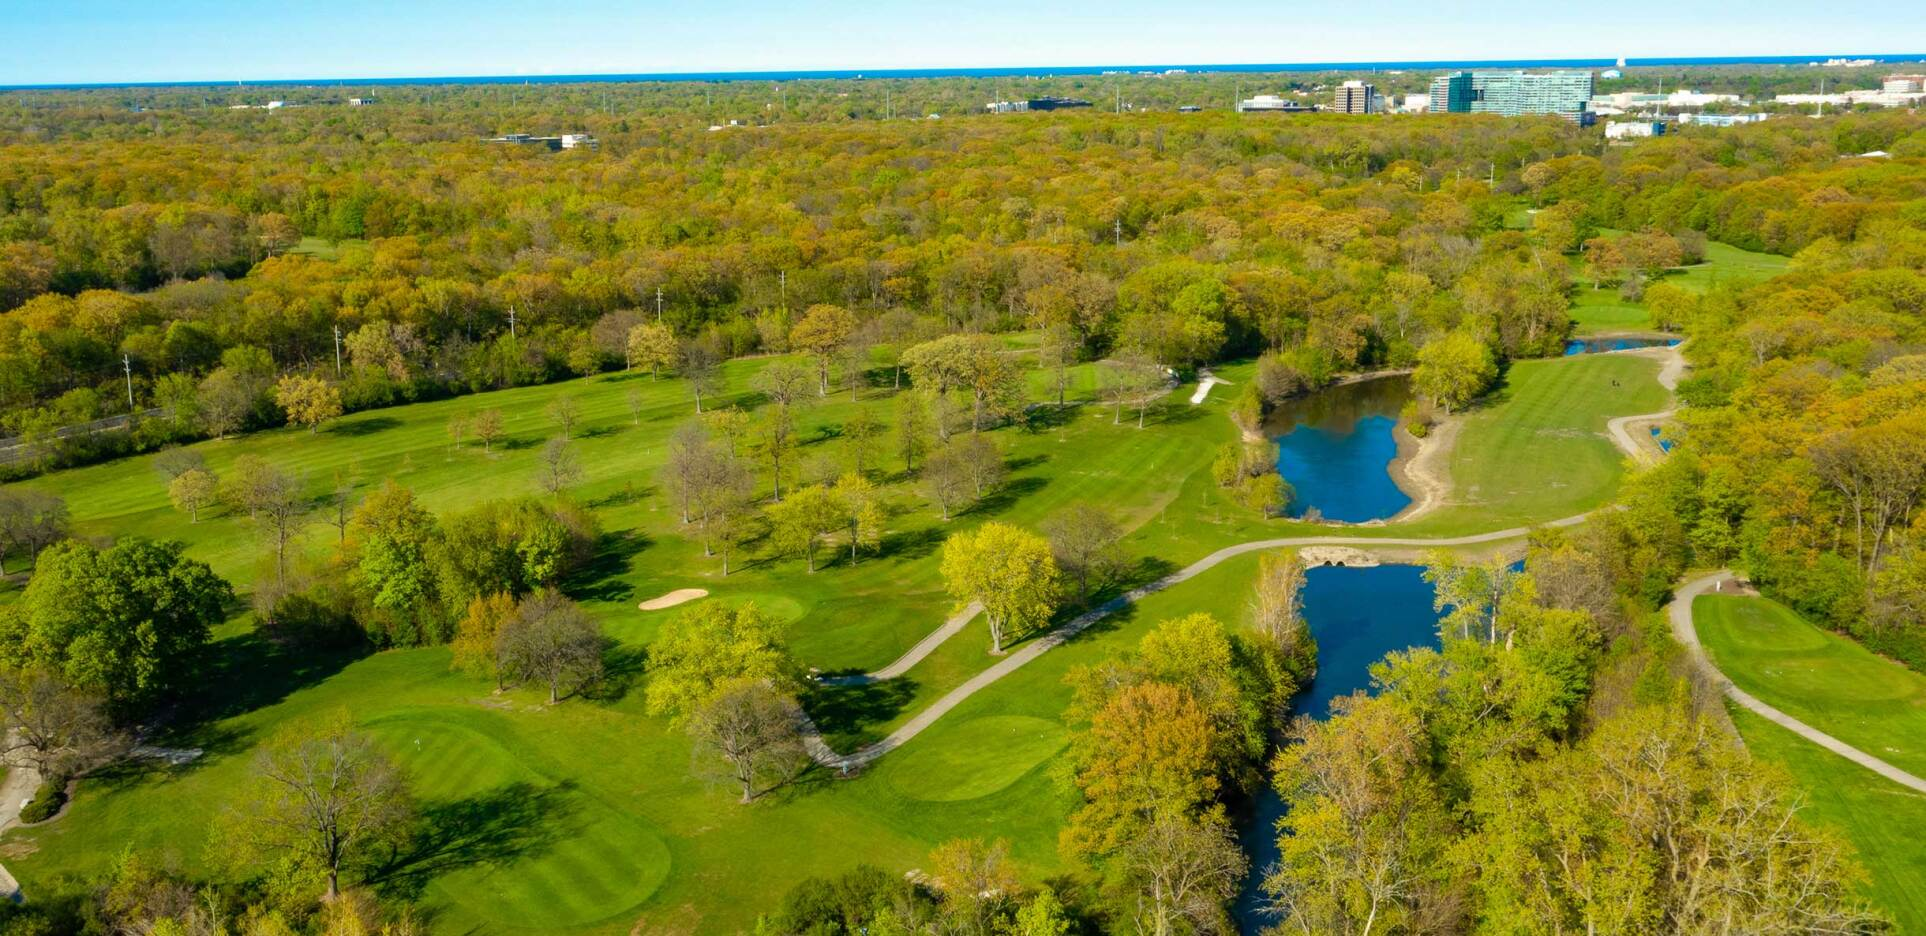 Chick Evans Golf Course Overhead Drone Photography